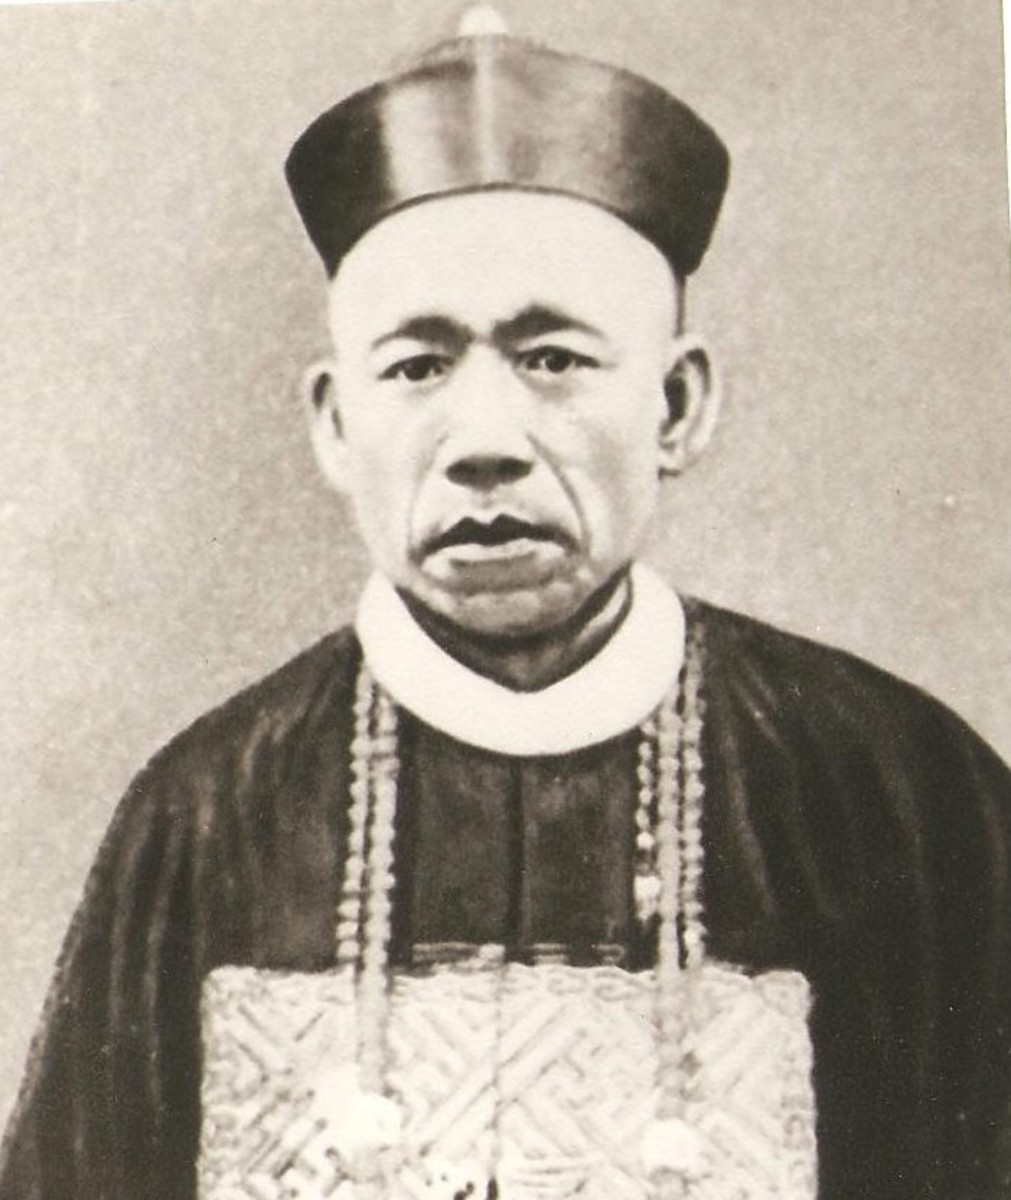 Carlos Palanca, a successful businessman and a known opium dealer.